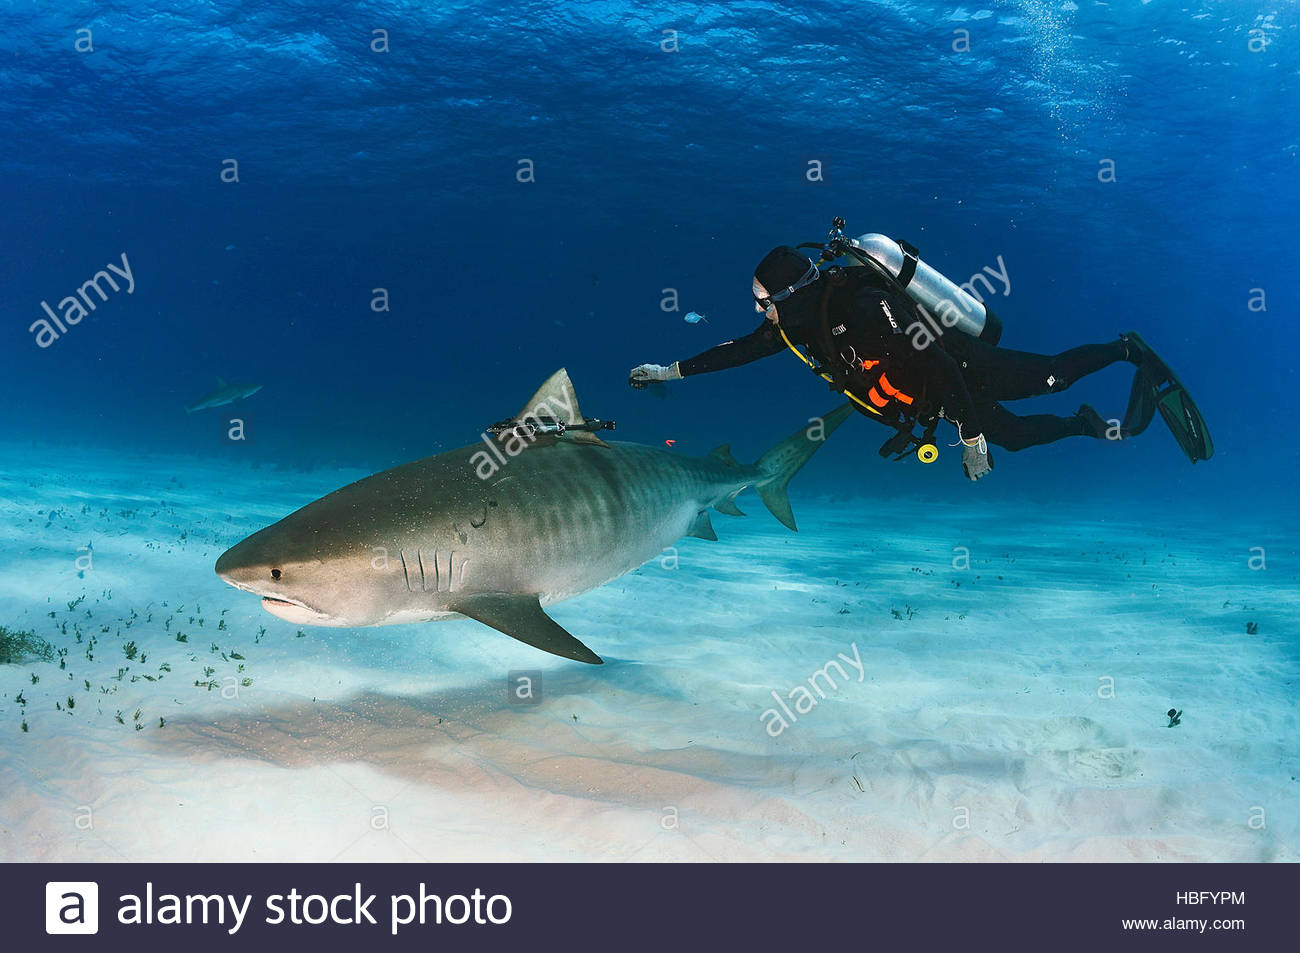 A Crittercam, a video that gathers footage of the shark's movements, is attached to a tiger shark by hand underwater. - Stock Image